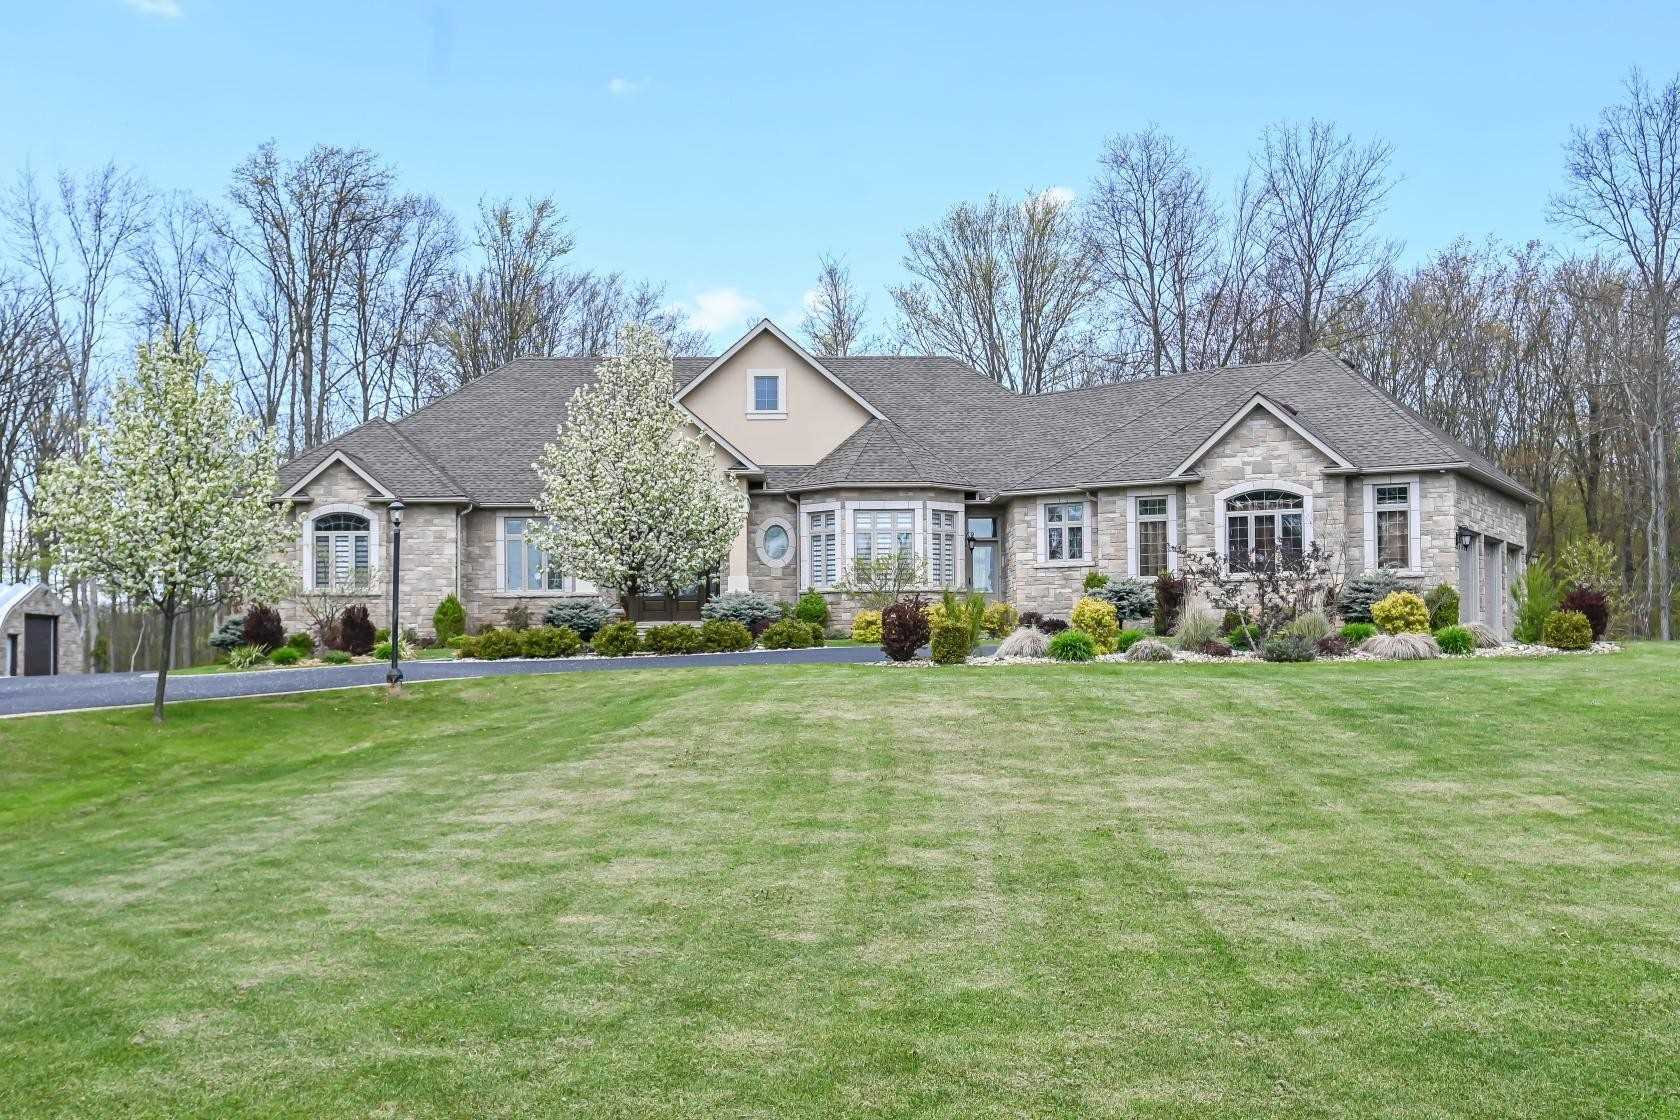 10 Mins From City! 3468Sqft Custom Built Bungalow Nestled On Apprx 25 Total Acres Of Landscaped Grounds W/Multiple Acres Of Treeline & Bush. 6300Sqft Of Finshd Livng Space. Trple Car Grg On Side, Natural Light From Frnt To Back, Ceramic Tile & Views Of Bckyrd Over Formal Dining Rm. Hardwd Flrs W/Custom Trimwork & Crwn Mldng Arnd 10Ft Ceils. Master W/Frnch Drs, 2 W/I Clsets, 6Pc Ensuite & W/O To Rear Porch. O/C E/I Kitchen W/Granite Isl, Bay Wdw In Brkfst. Rsa